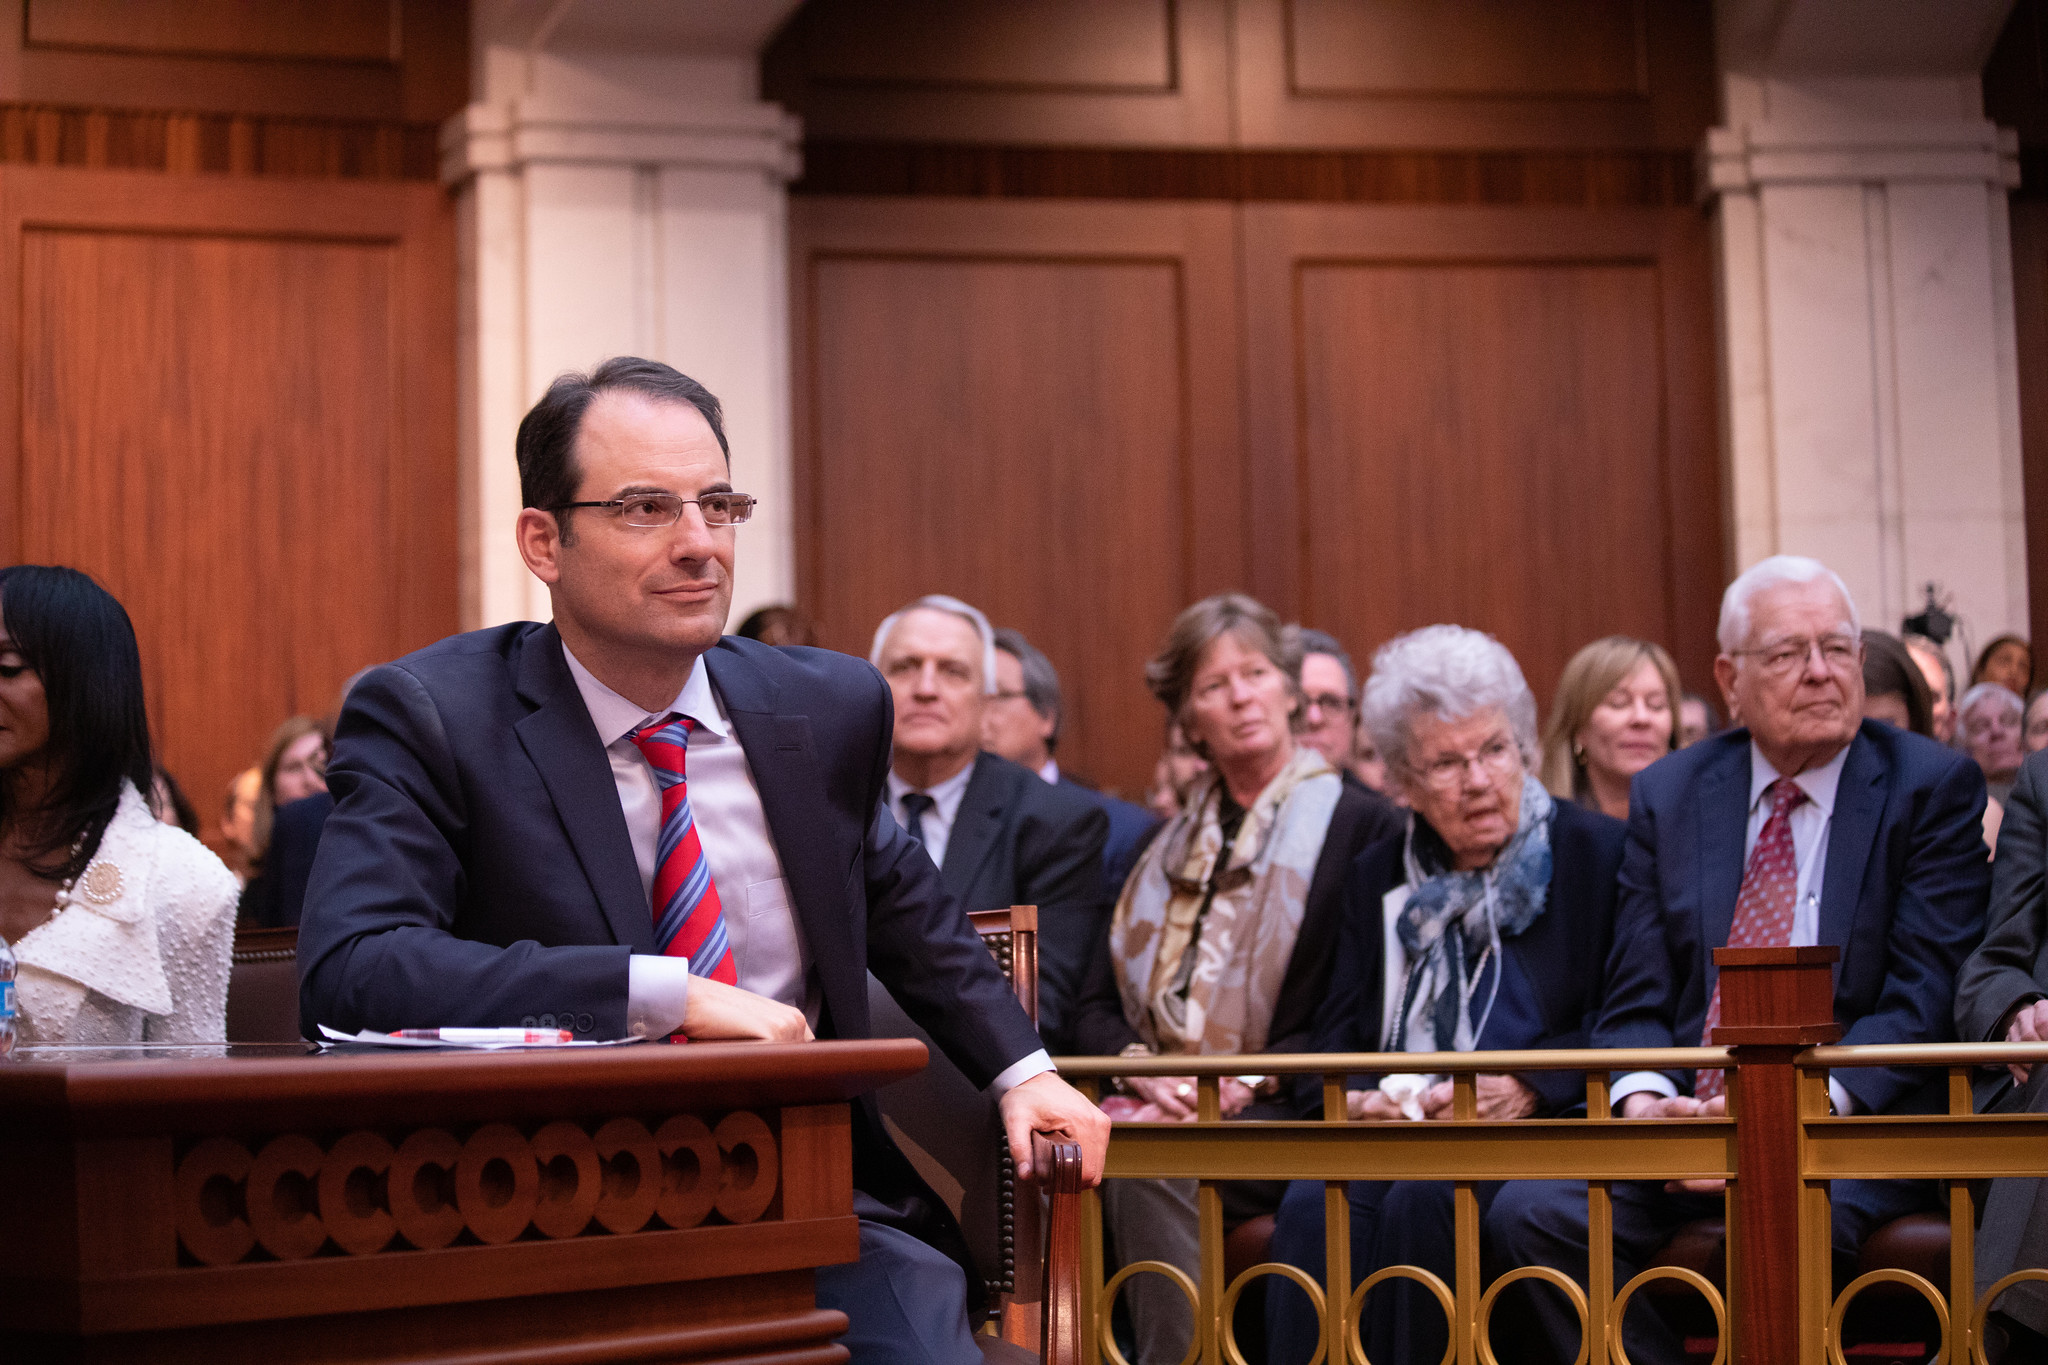 Attorney General Phil Weiser sitting at a table in a court room